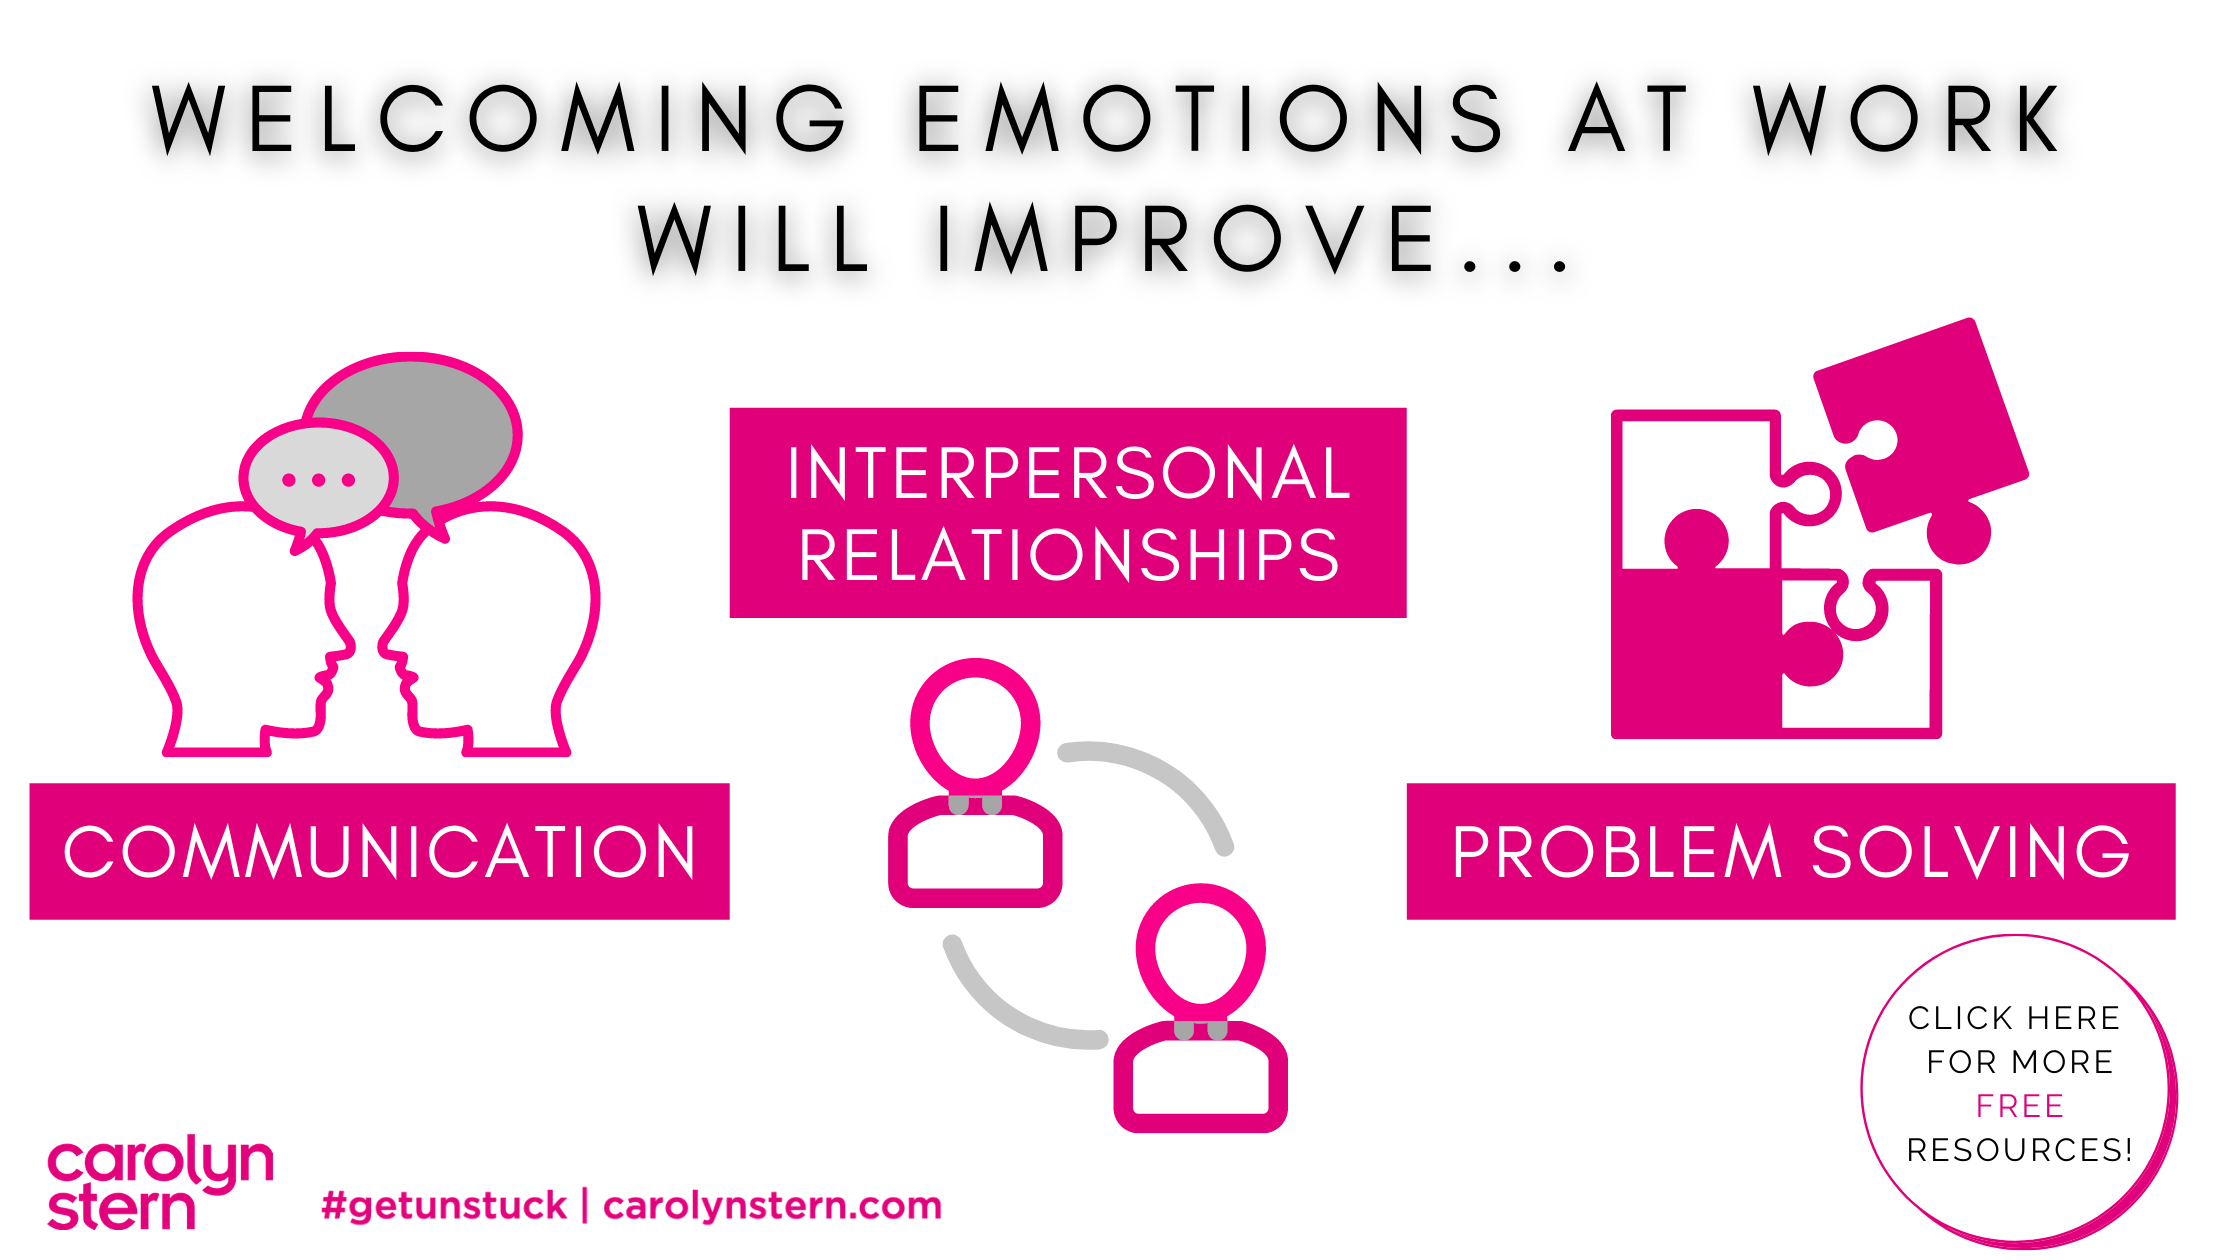 Benefits of Showing Emotions at Work